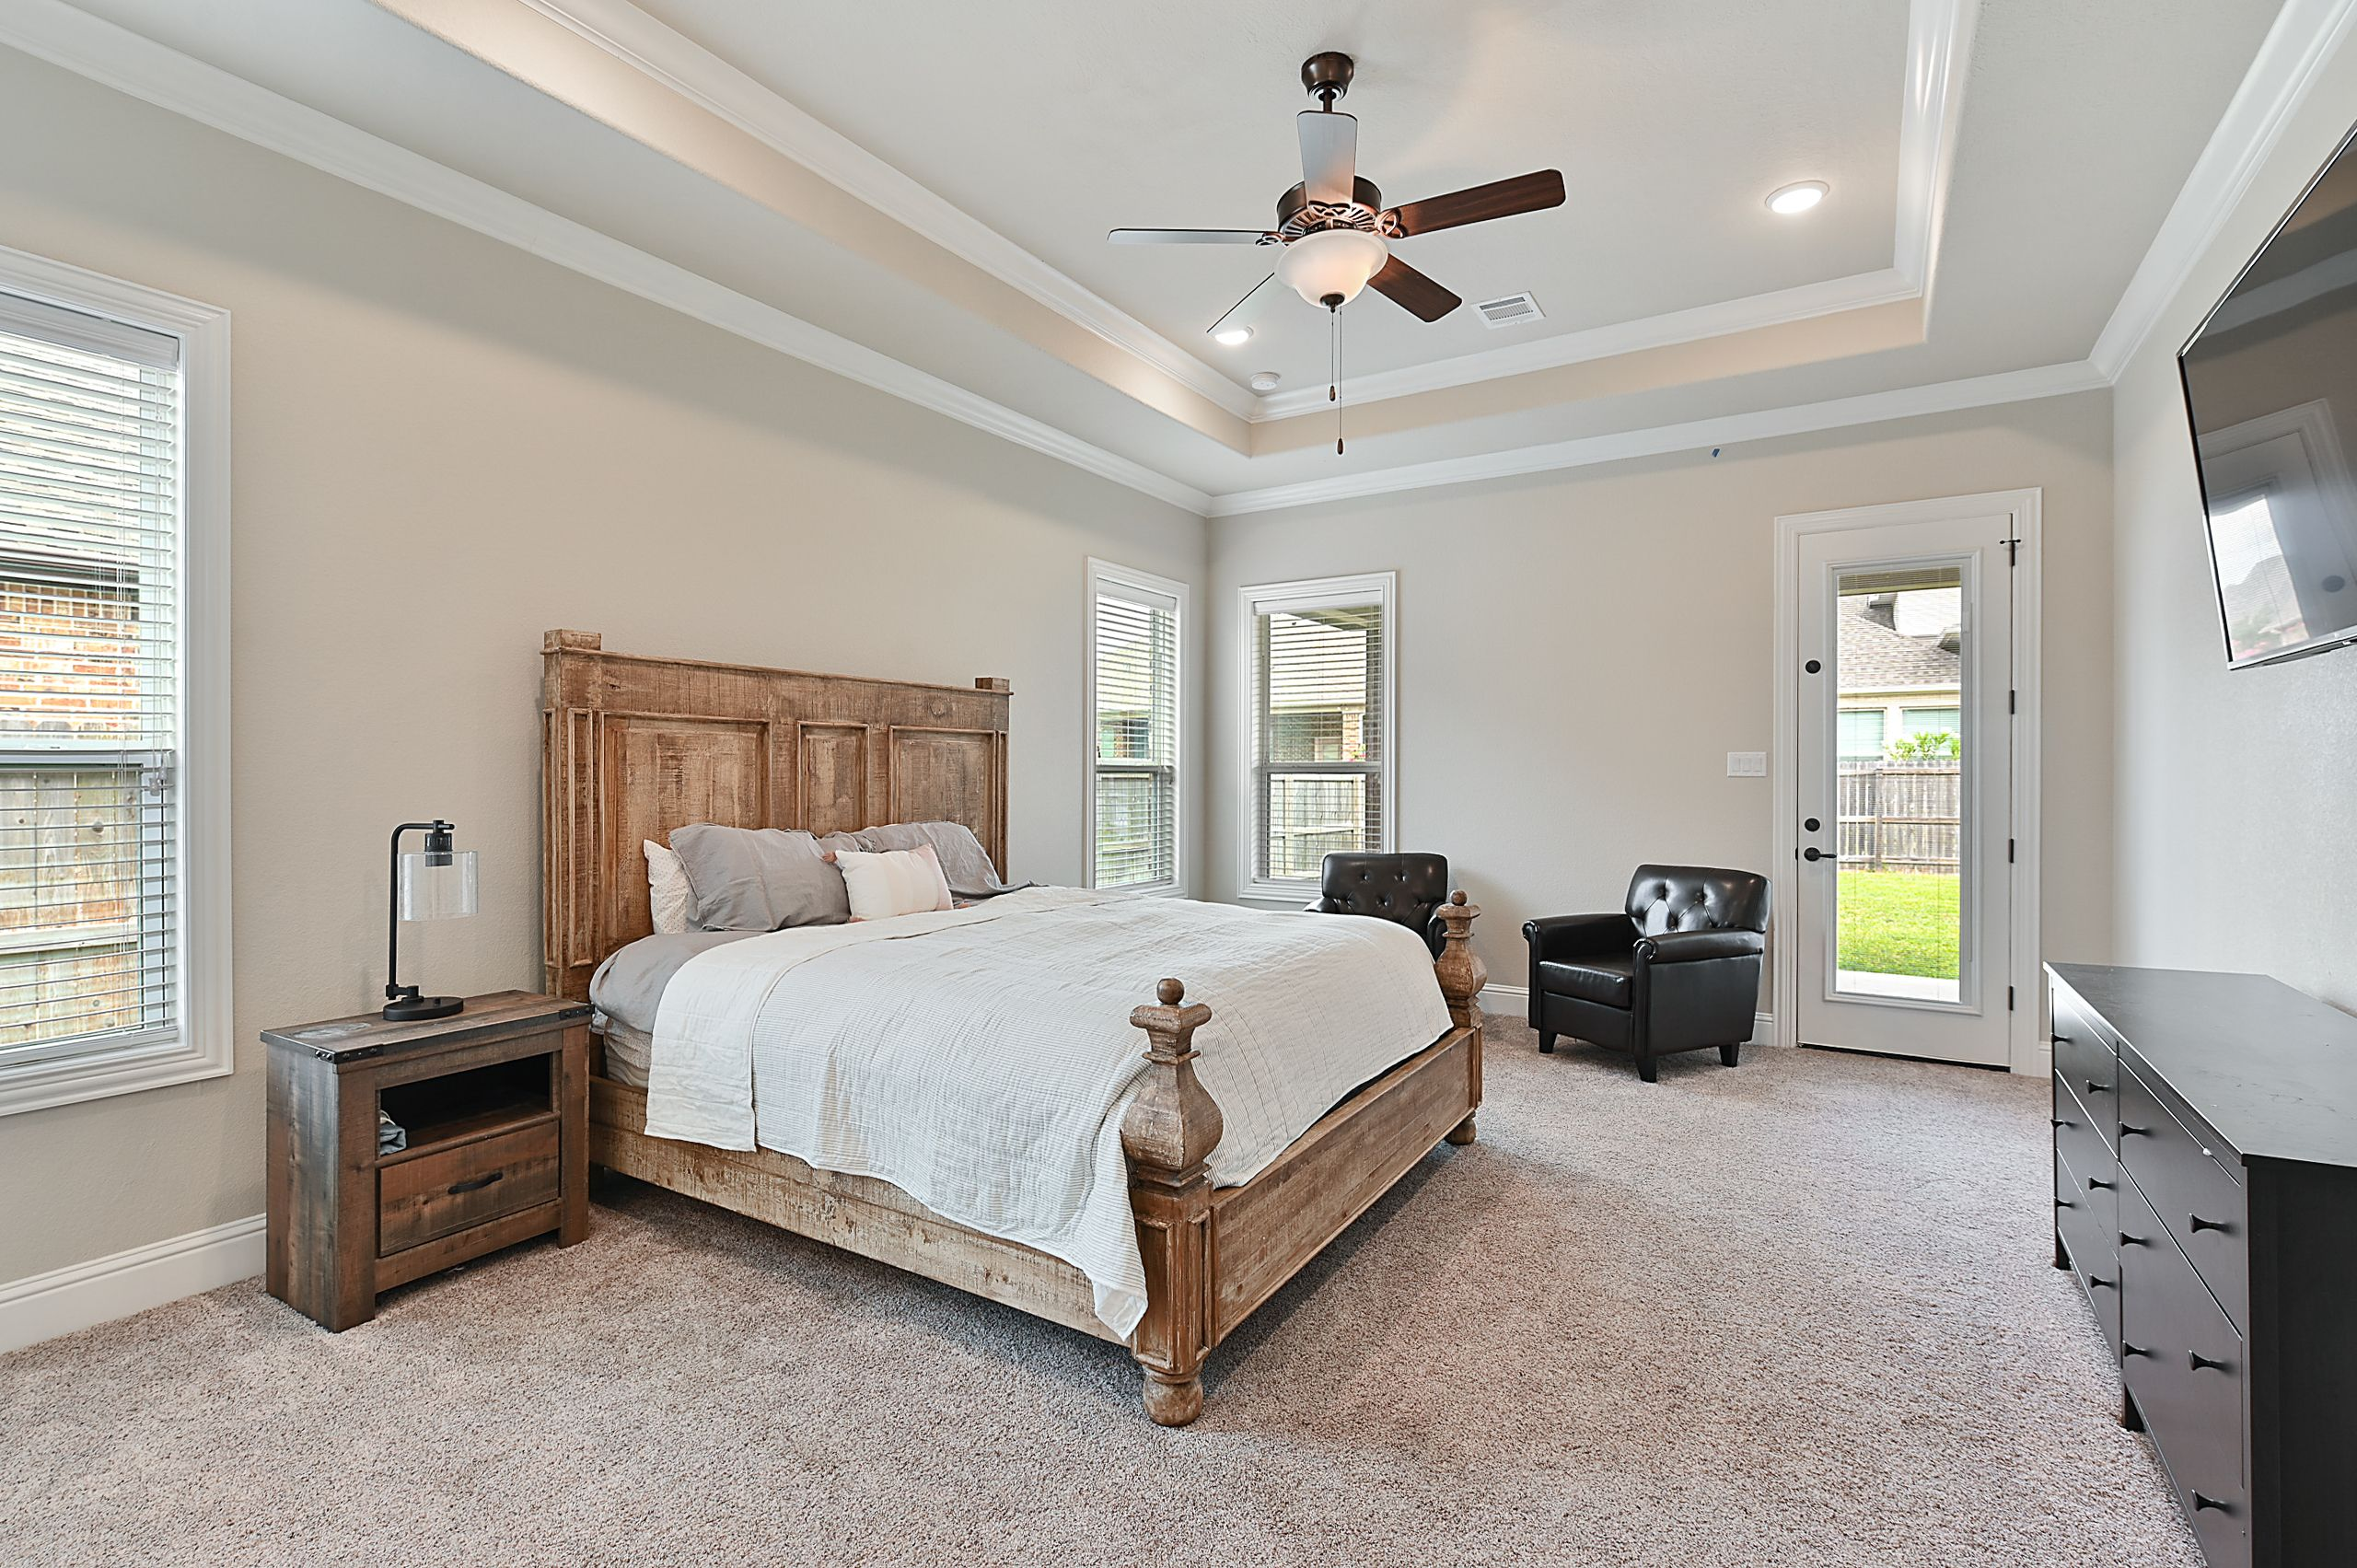 Bedroom featured in the 4406 Uphor Court By Blackstone Homes in Bryan-College Station, TX